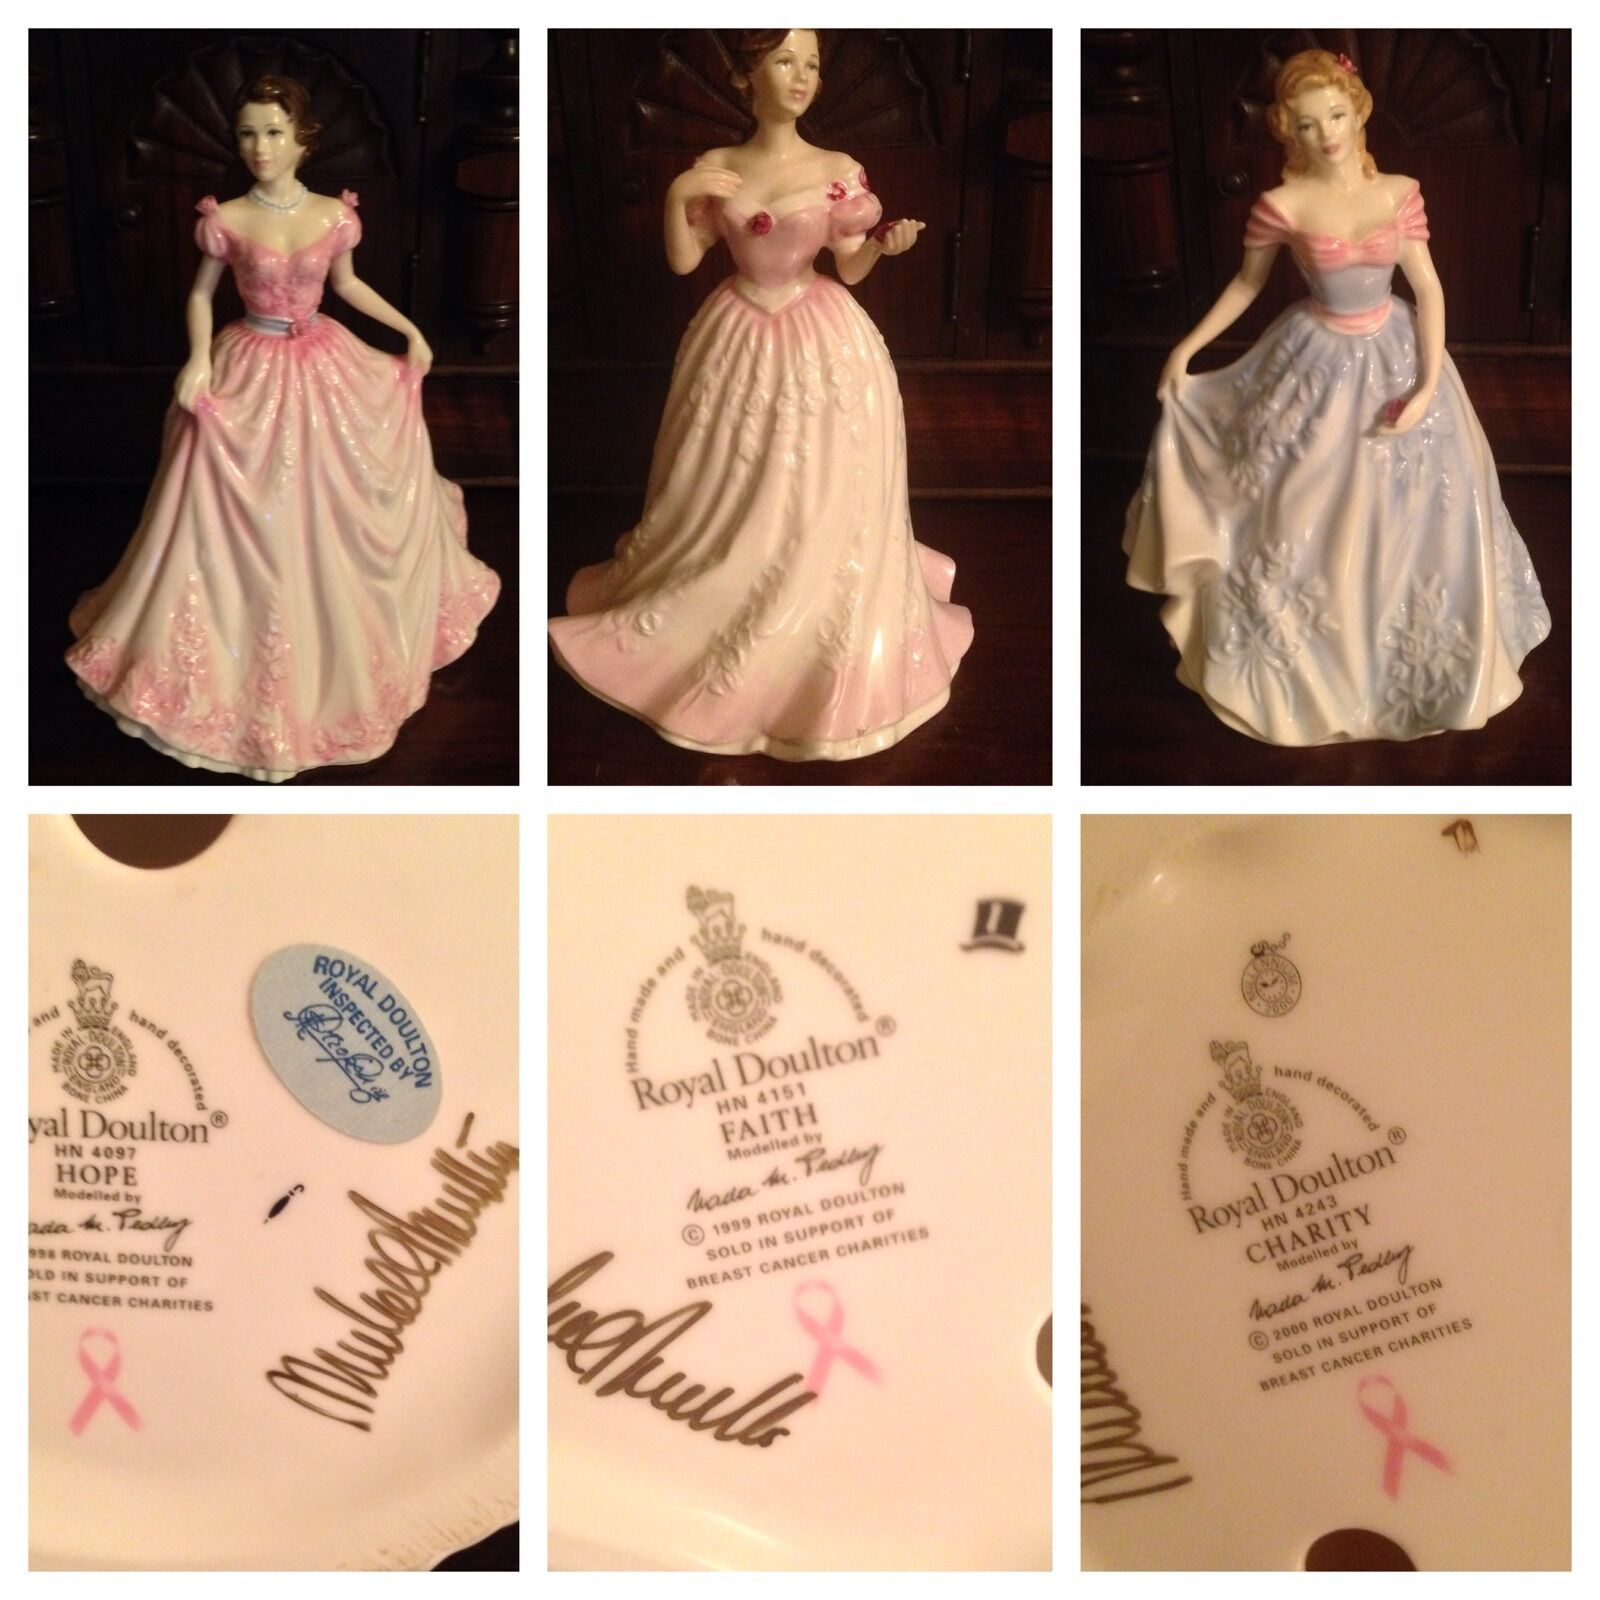 Royal Doulton Breast Cancer Porcelain Charity Collection signed by W. Dalton